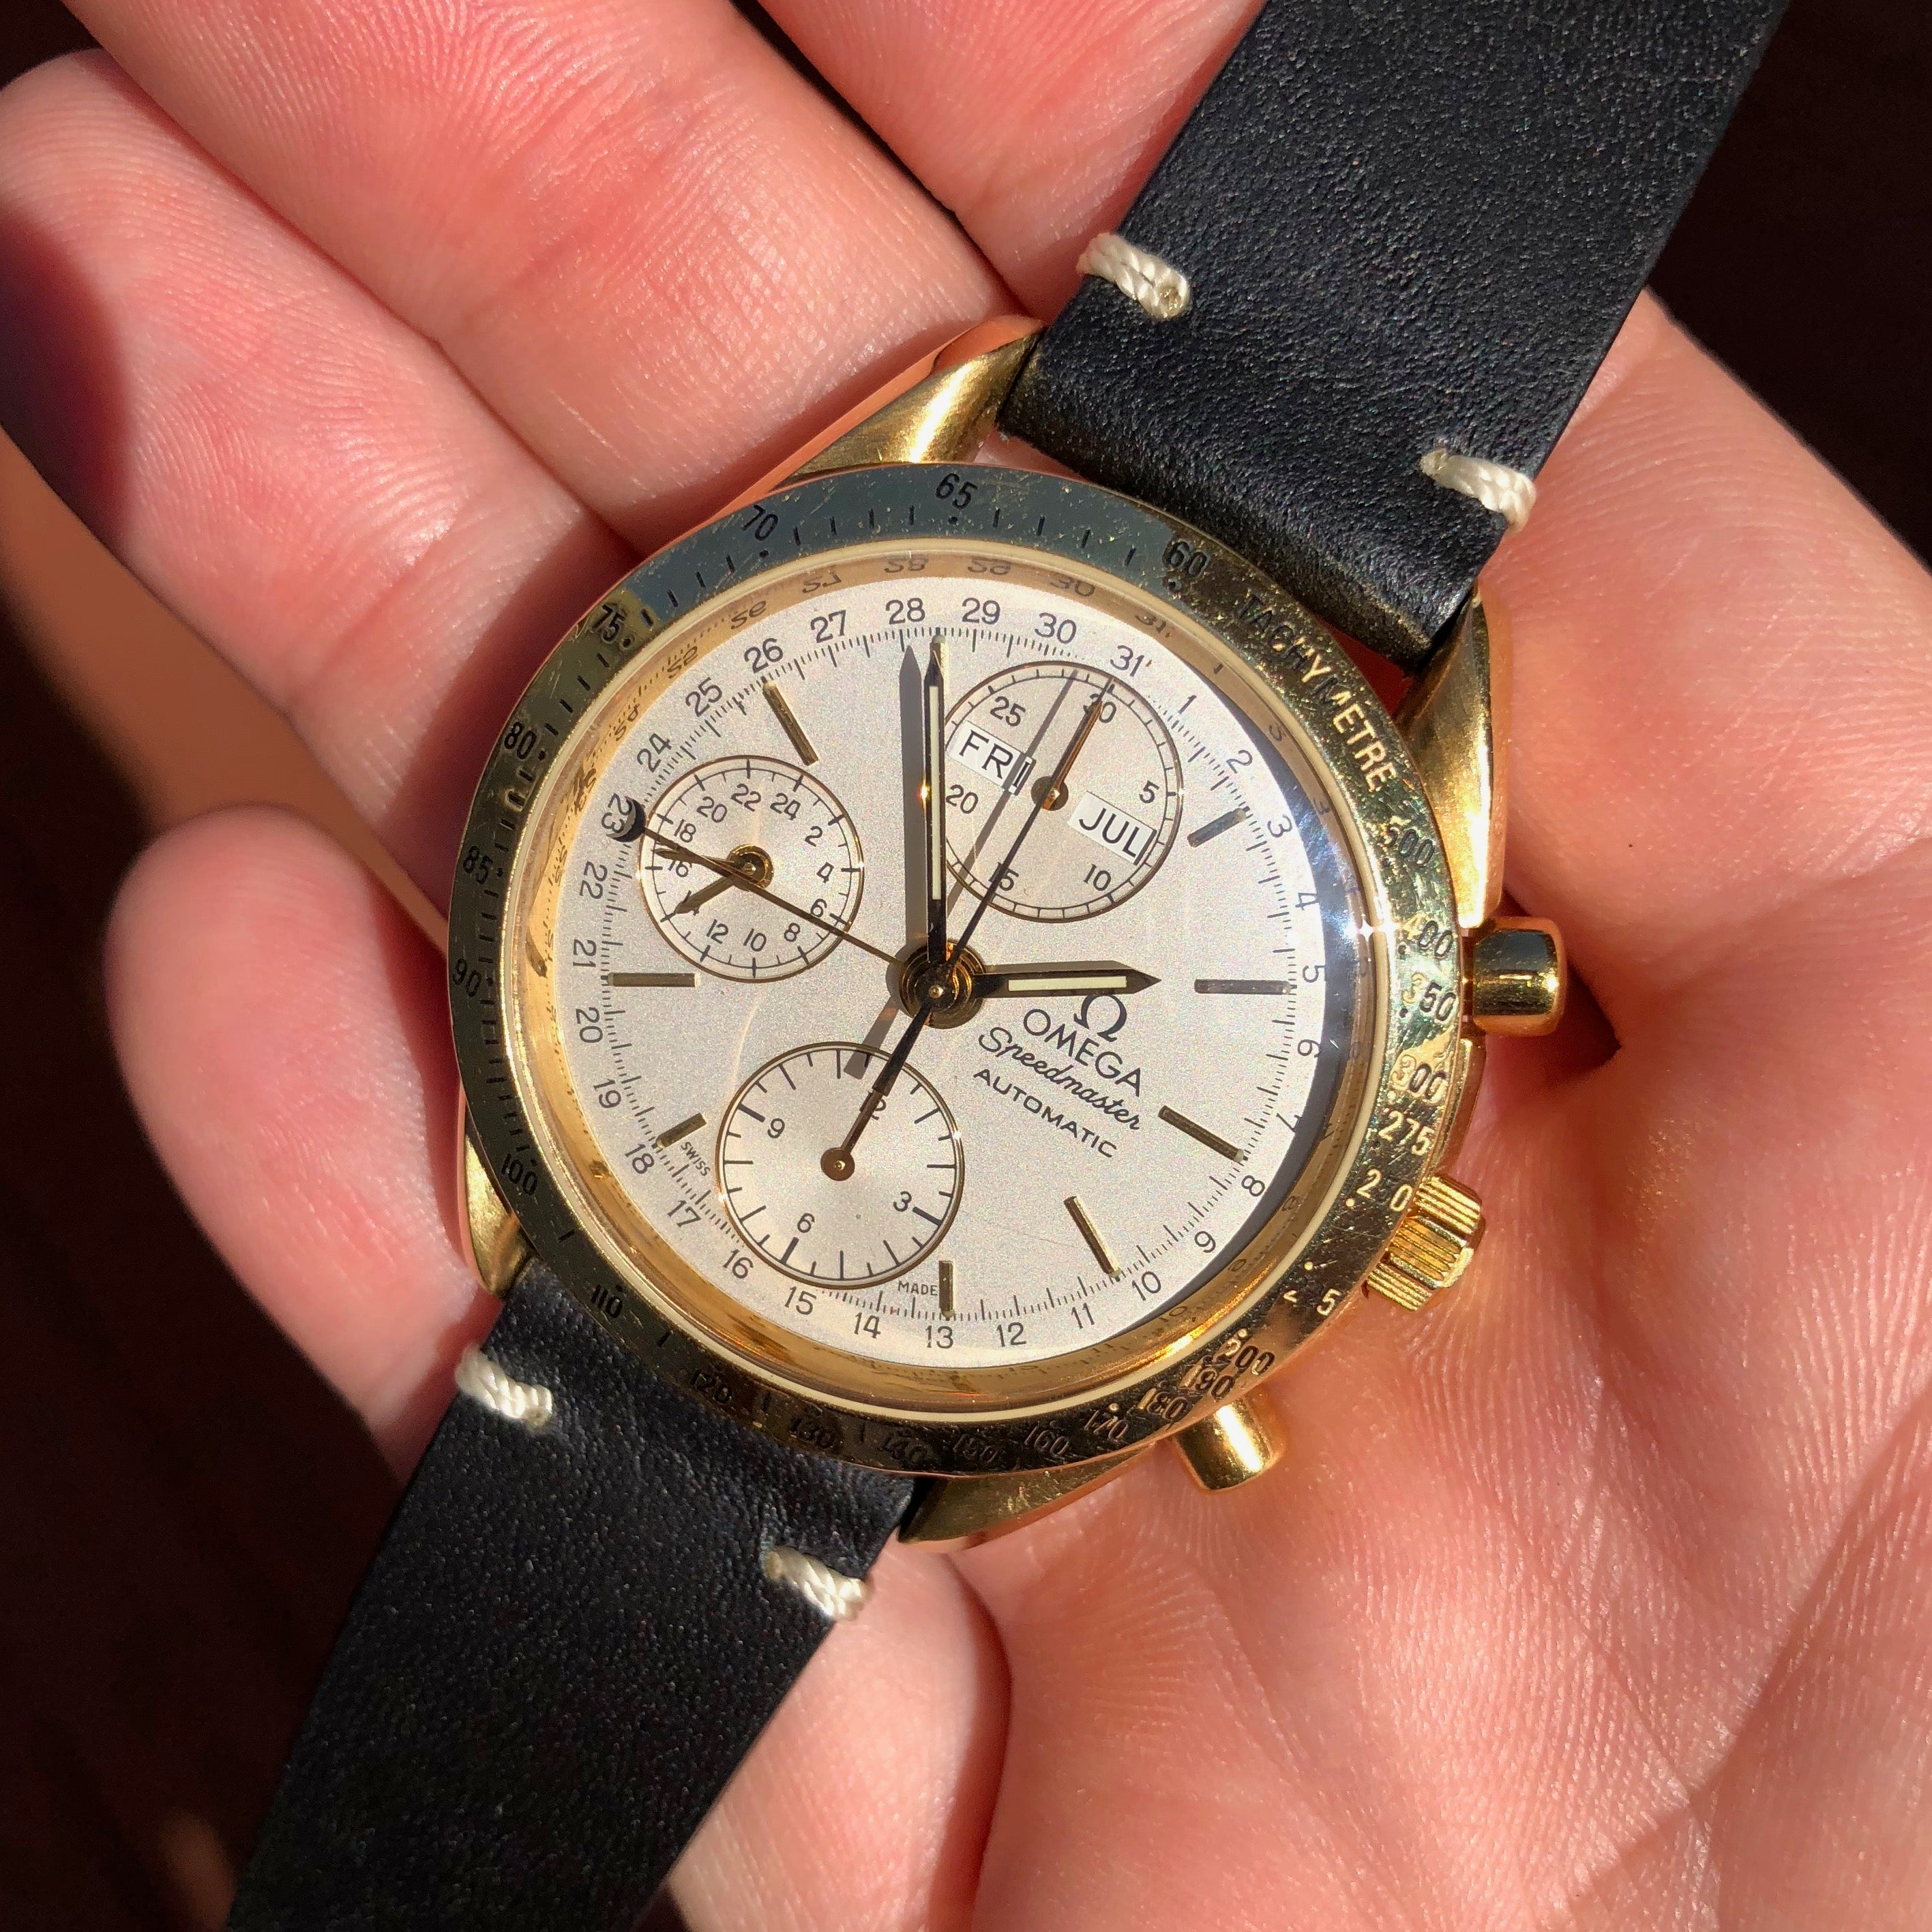 Omega Speedmaster 175.0044 18K Yellow Gold Day Date Chronograph Wristwatch - Hashtag Watch Company